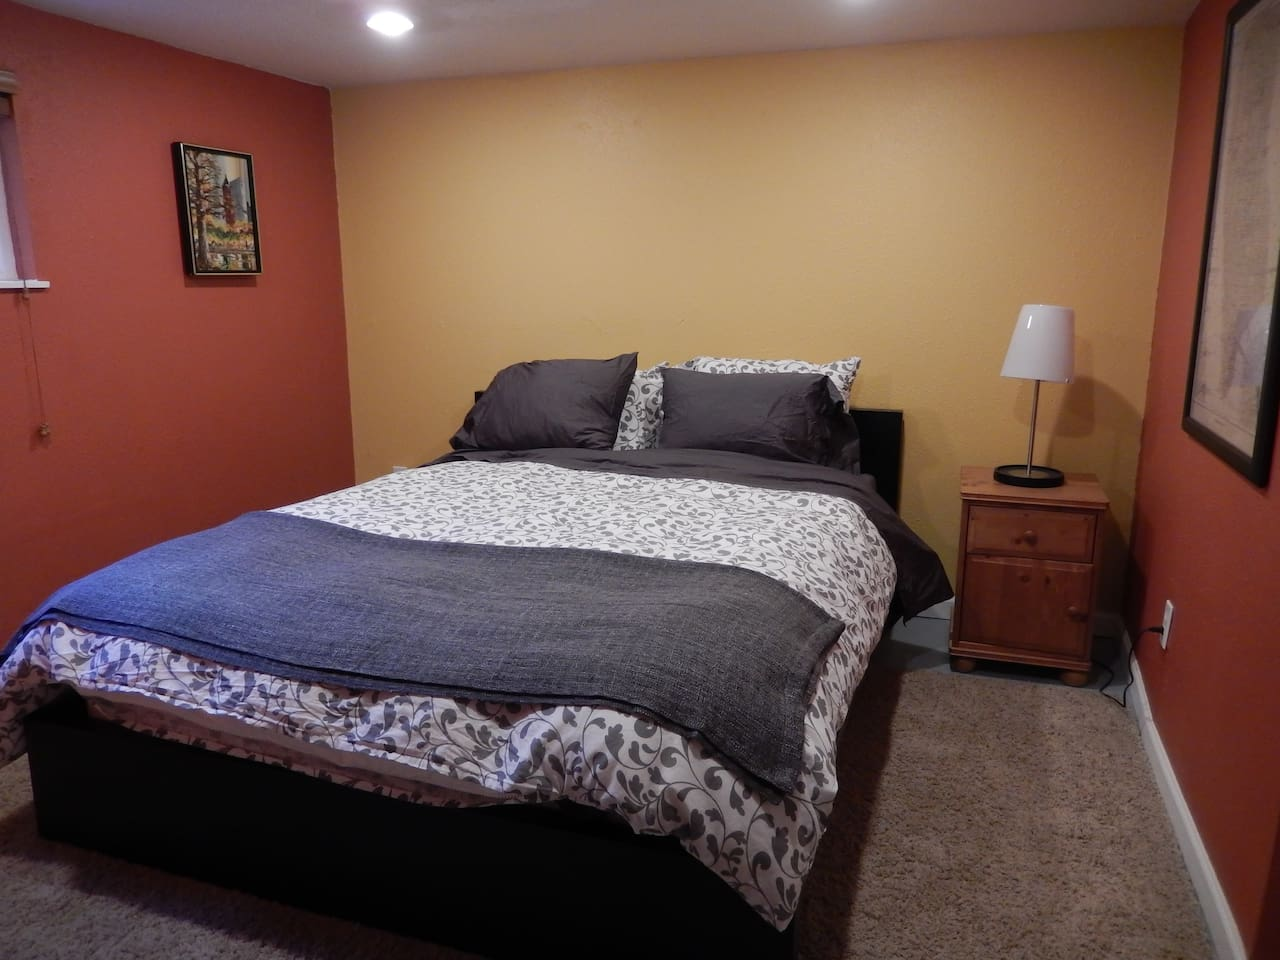 Cozy bedroom, located in the basement portion of the apartment.